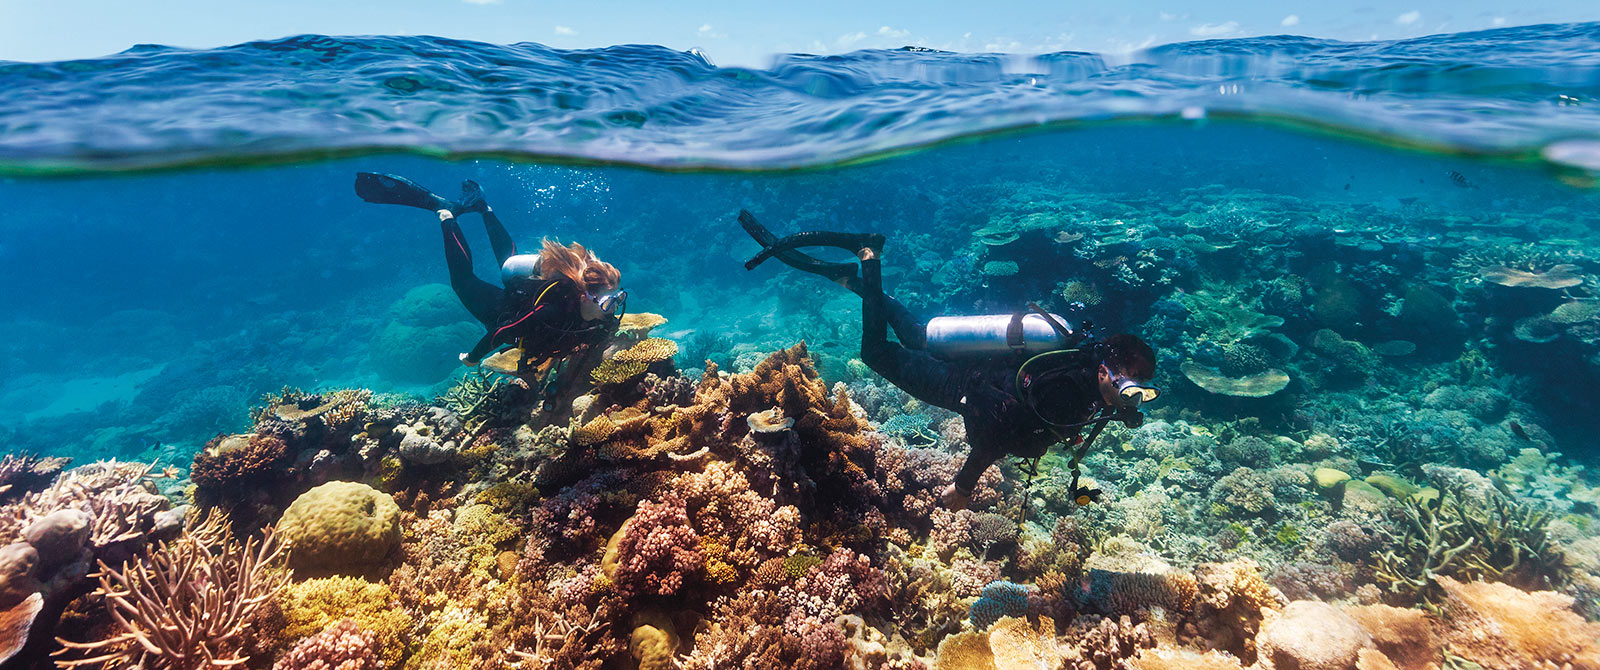 Diving the Great Barrier Reef - Australia Reef, Rainforest, and Brisbane Explorer Package